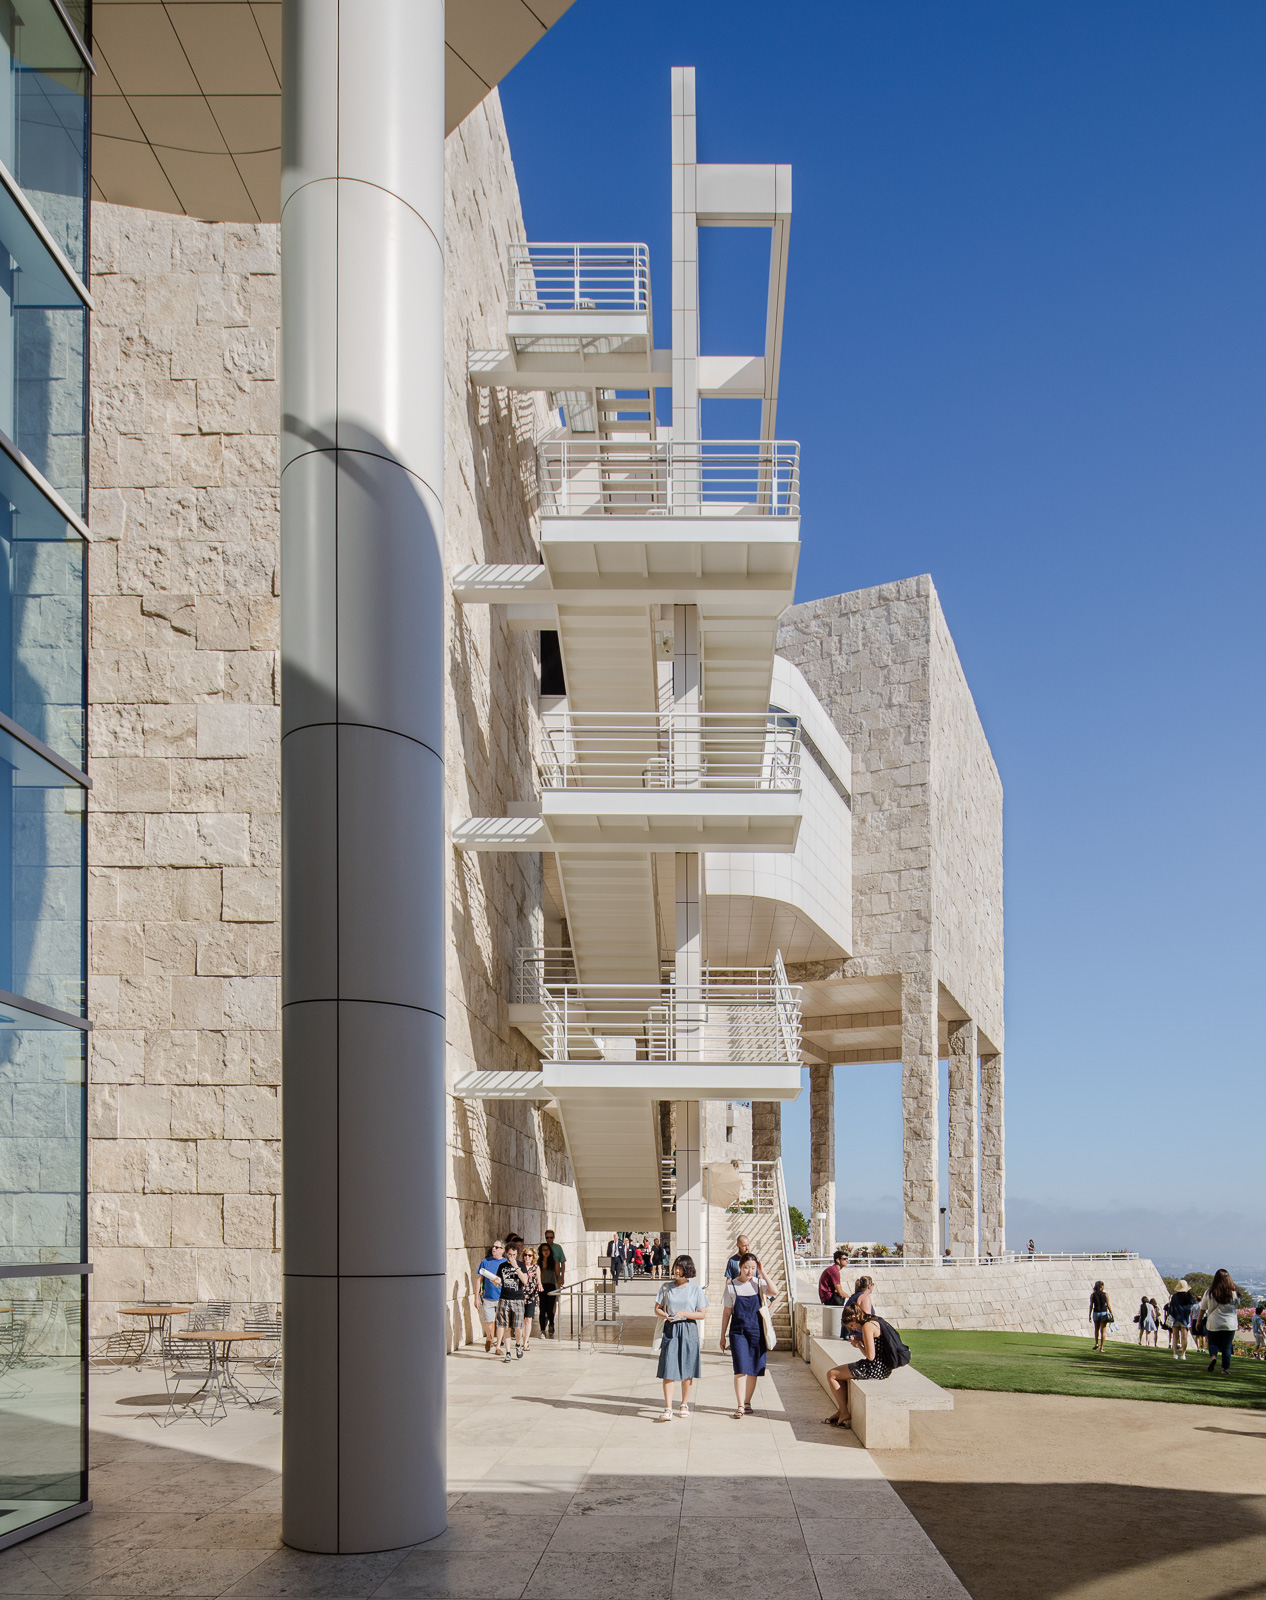 Exteriors and terraces of the Getty Center museum in Los Angeles